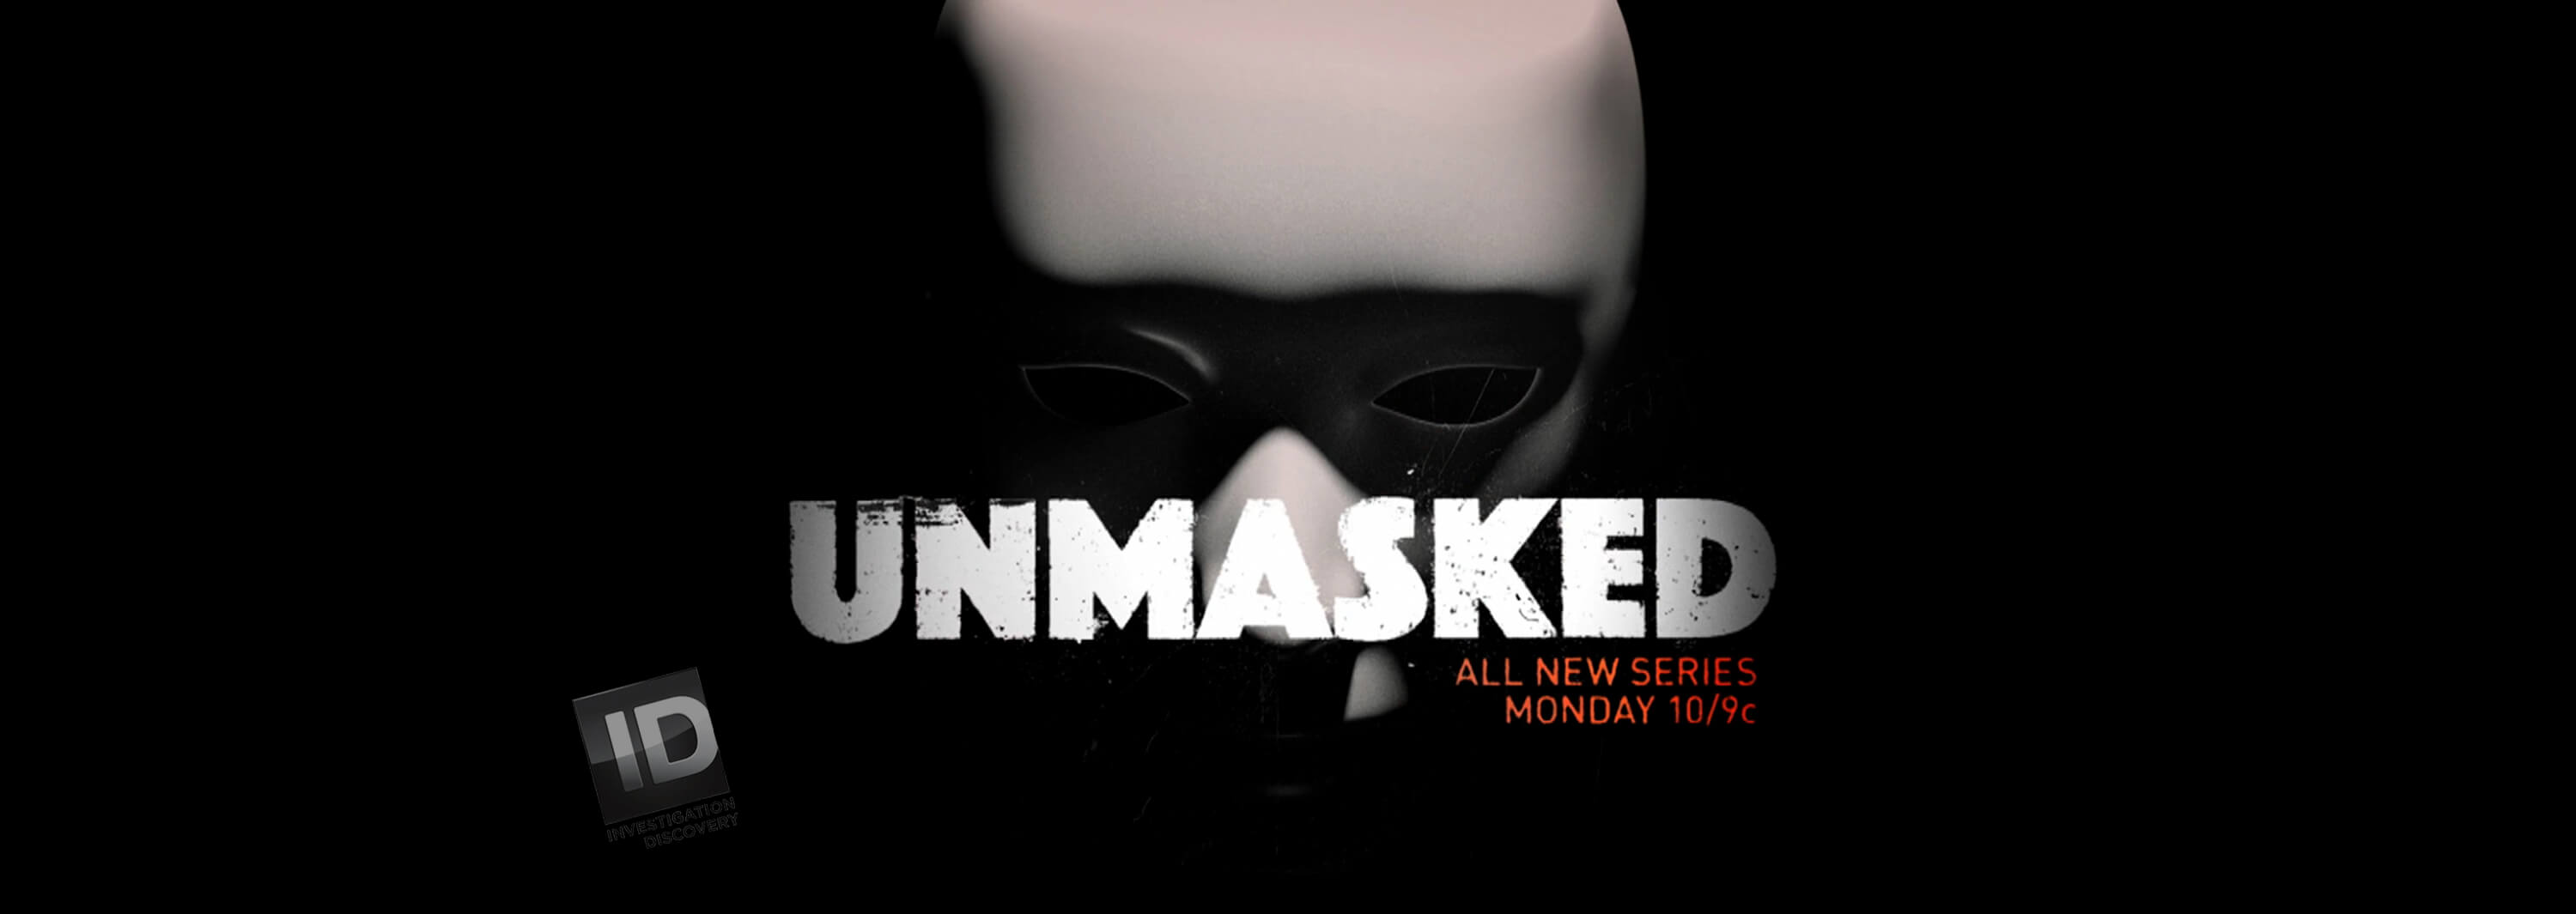 Unmasked Smaller